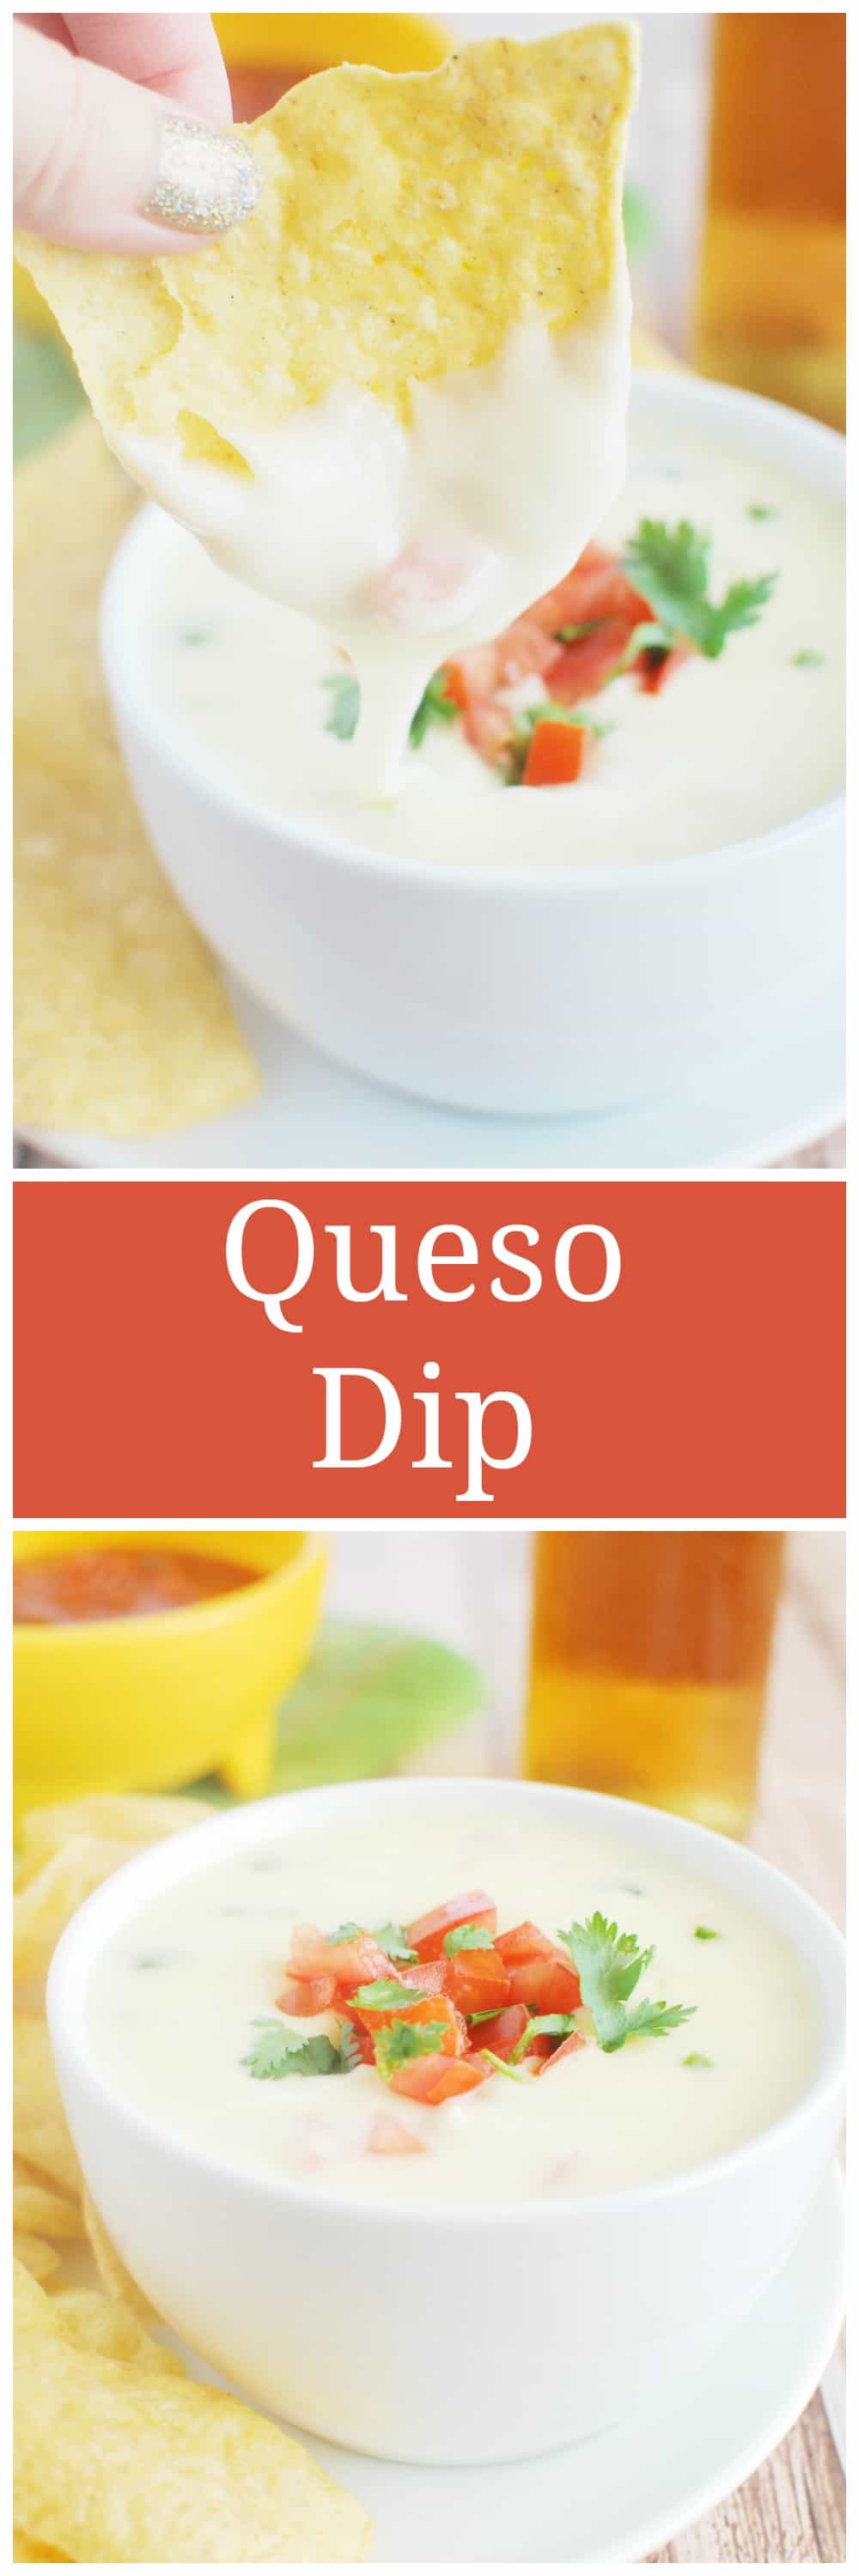 Restaurant Style Queso Dip - just like your favorite Mexican restaurant! Spicy melted cheese - perfect for dipping tortilla chips or using as a topping for tacos or burritos!